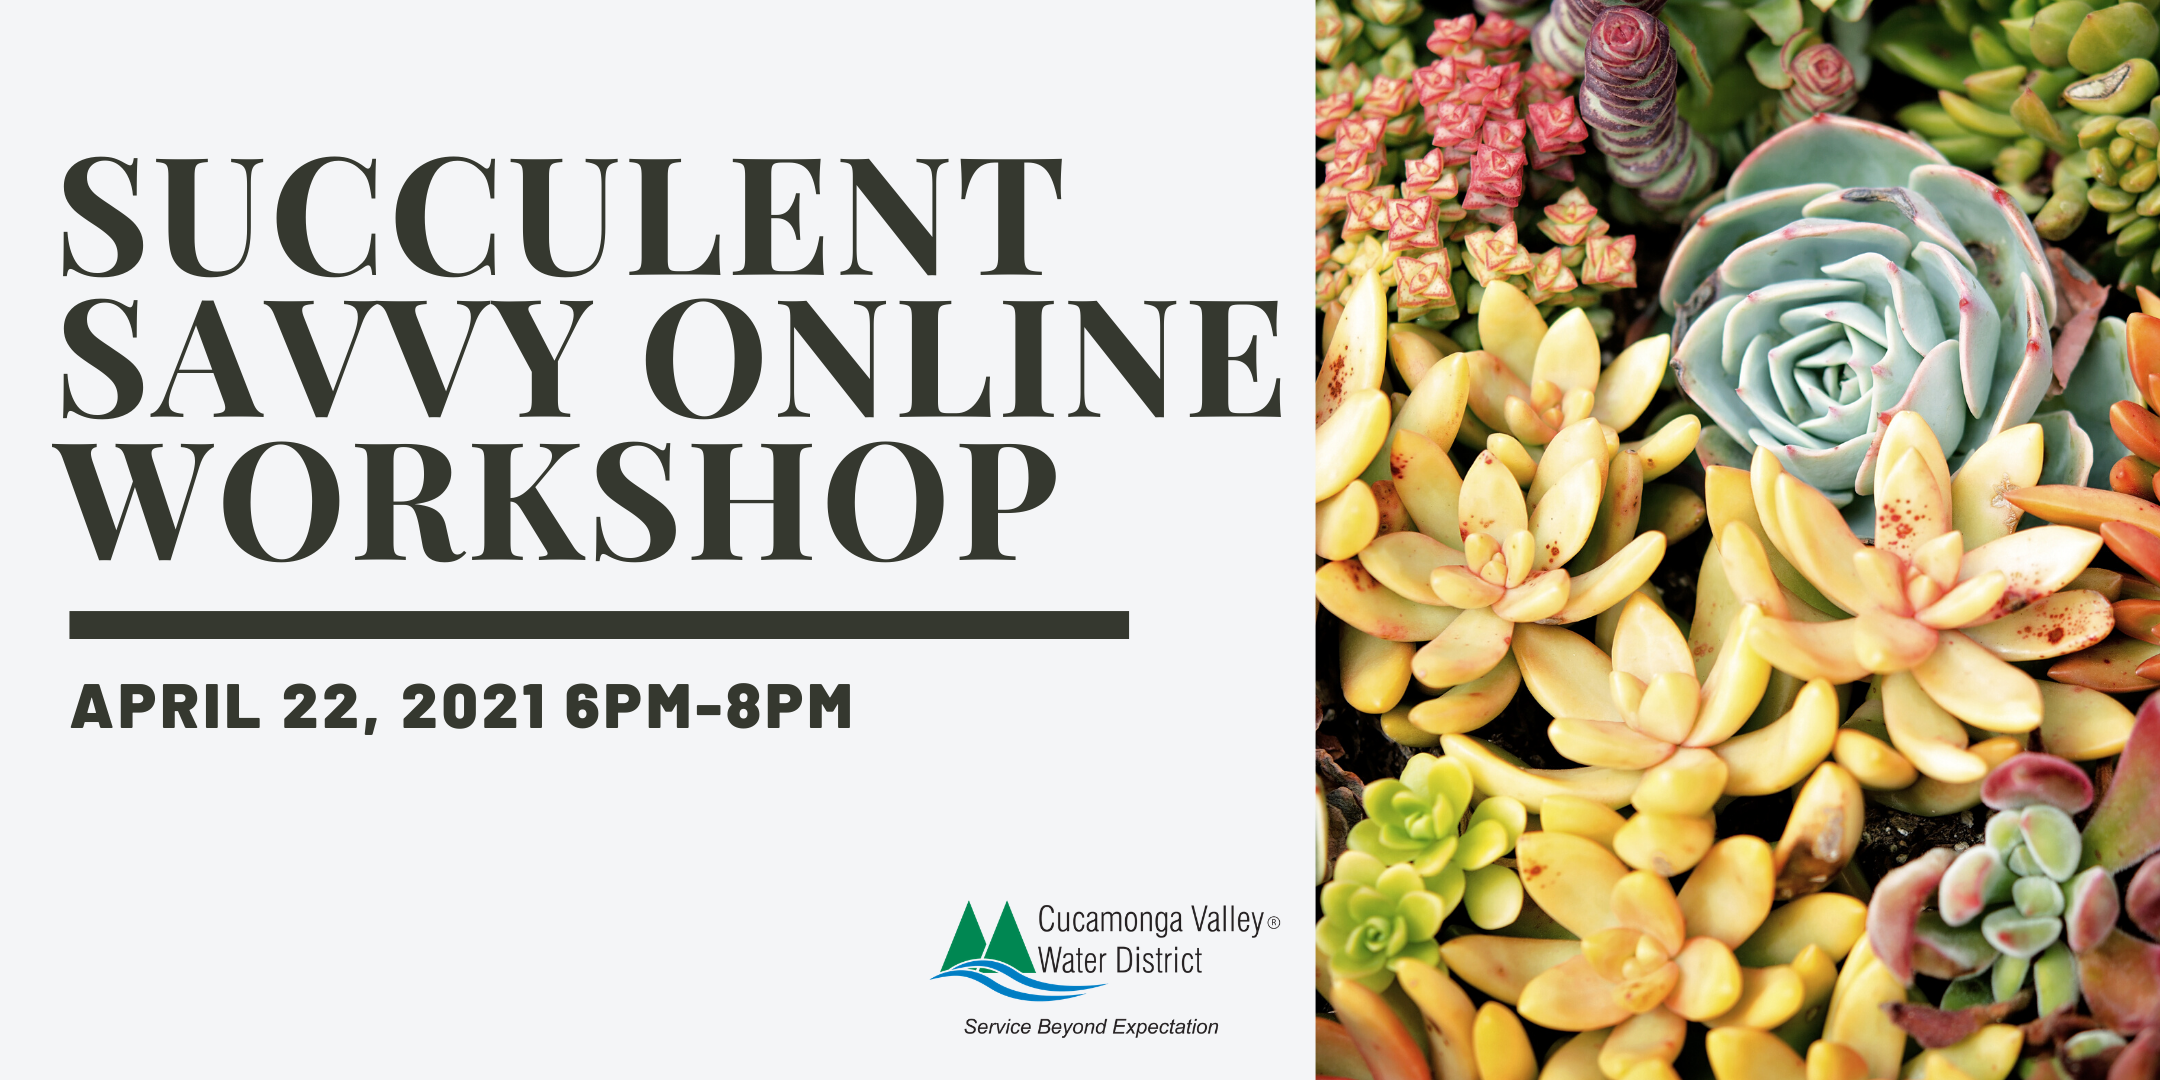 Succulent Savvy Online Workshop